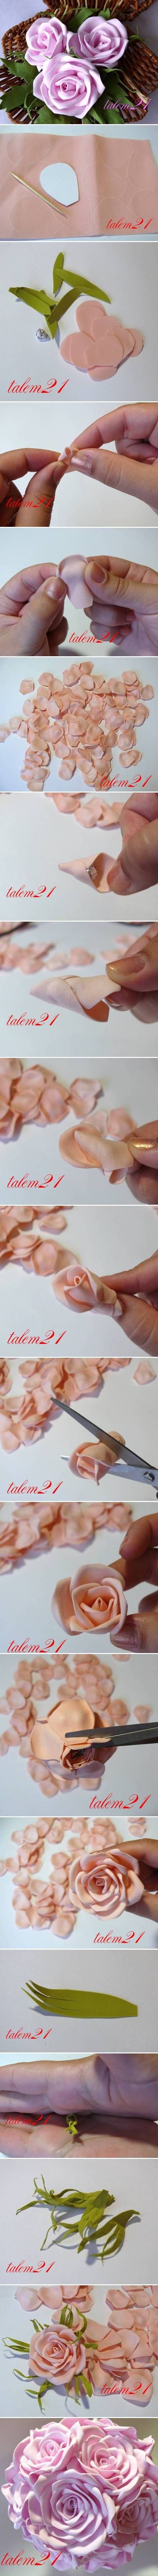 Step by Step Pics to make Beautiful Flowers